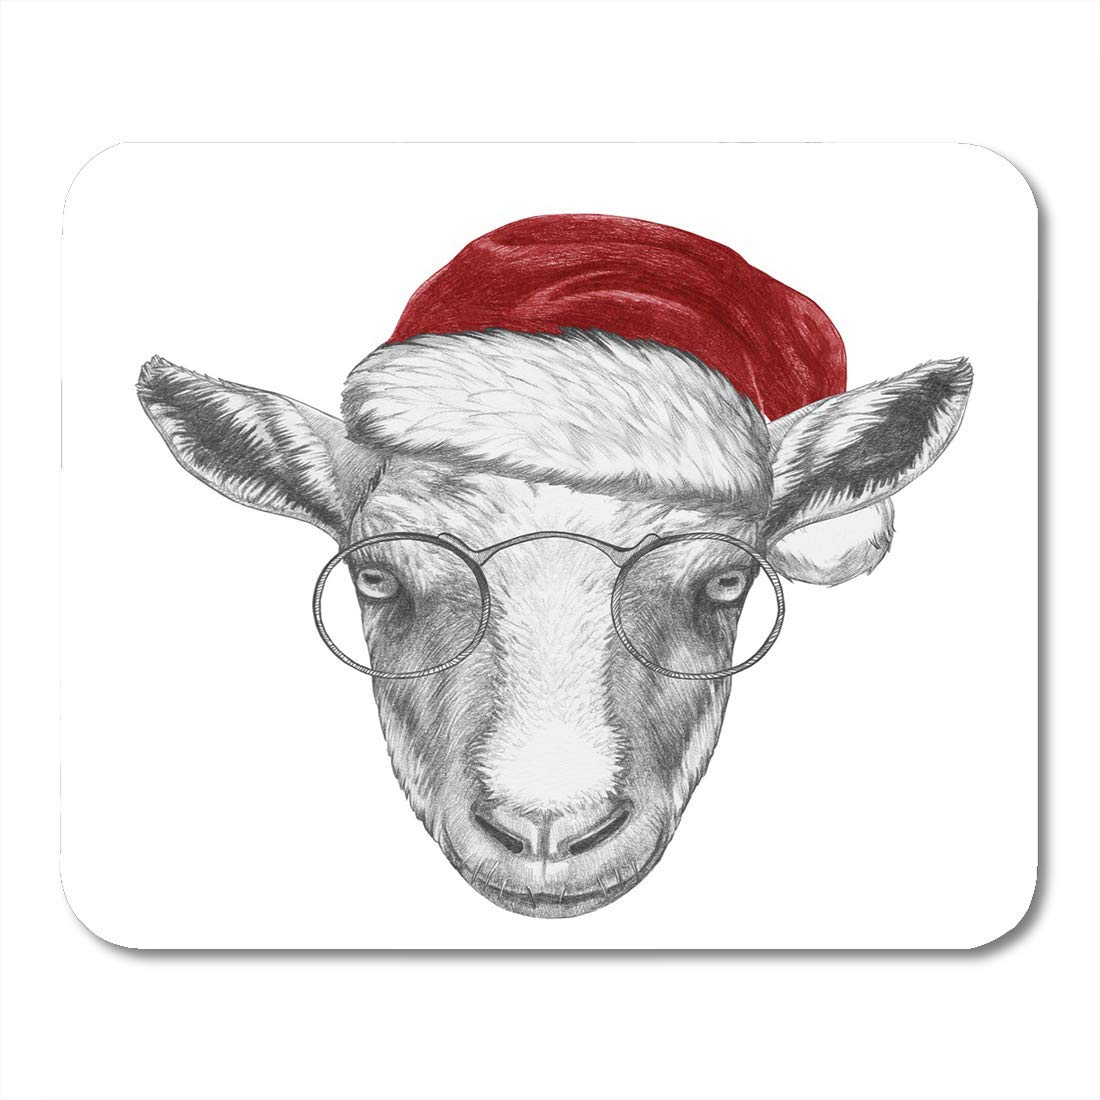 "Nakamela Mouse Pads Animal Black Christmas Portrait of Goat with Santa Hat Red Agriculture Celebration Mouse mats 9.5"" x 7.9"" Mouse pad Suitable for Notebook Desktop Computers"